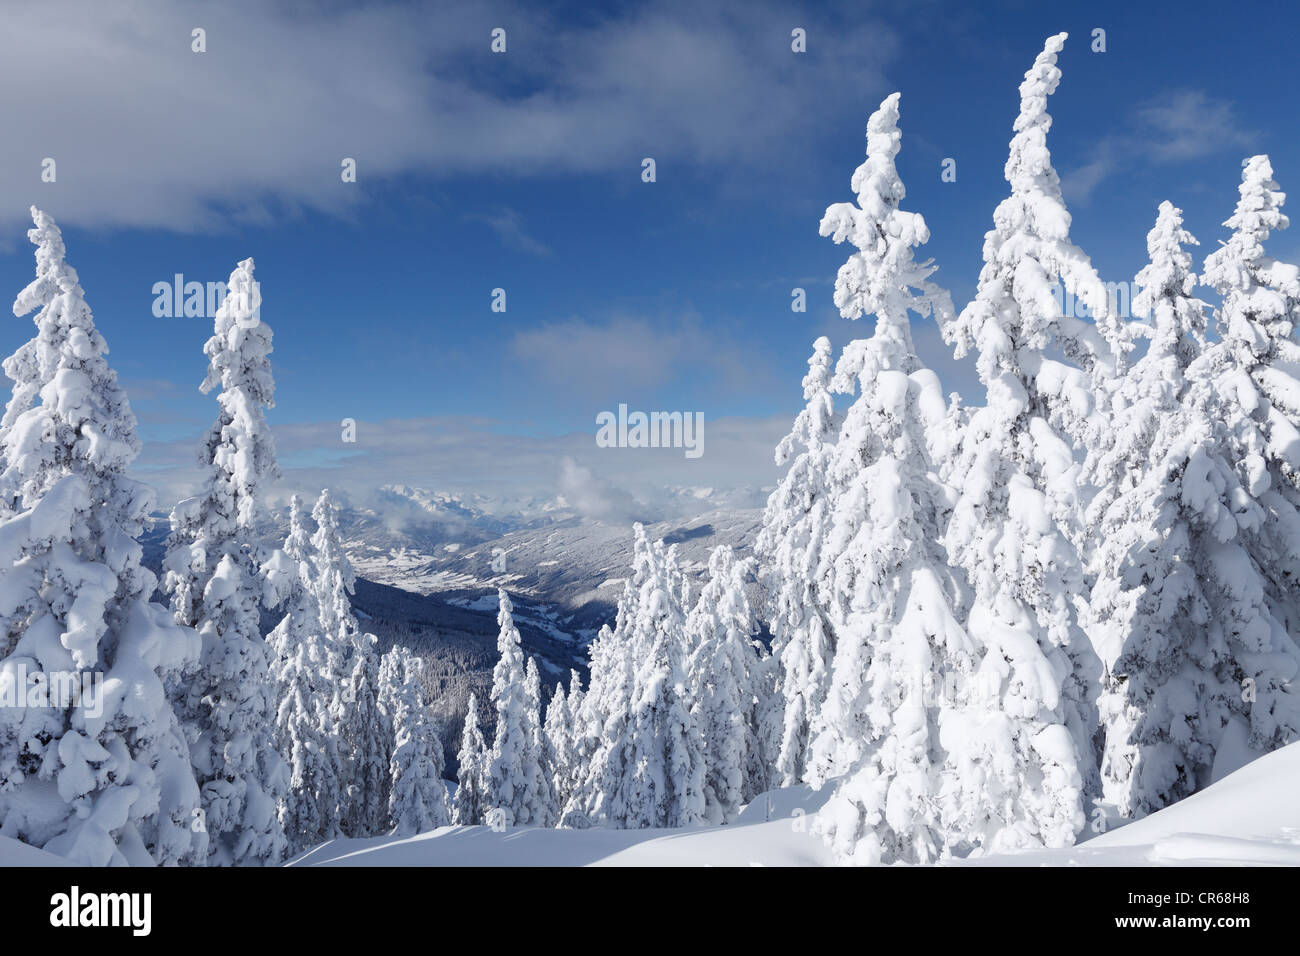 Austria, Salzburg County, View of snow covered firs on mountain - Stock Image